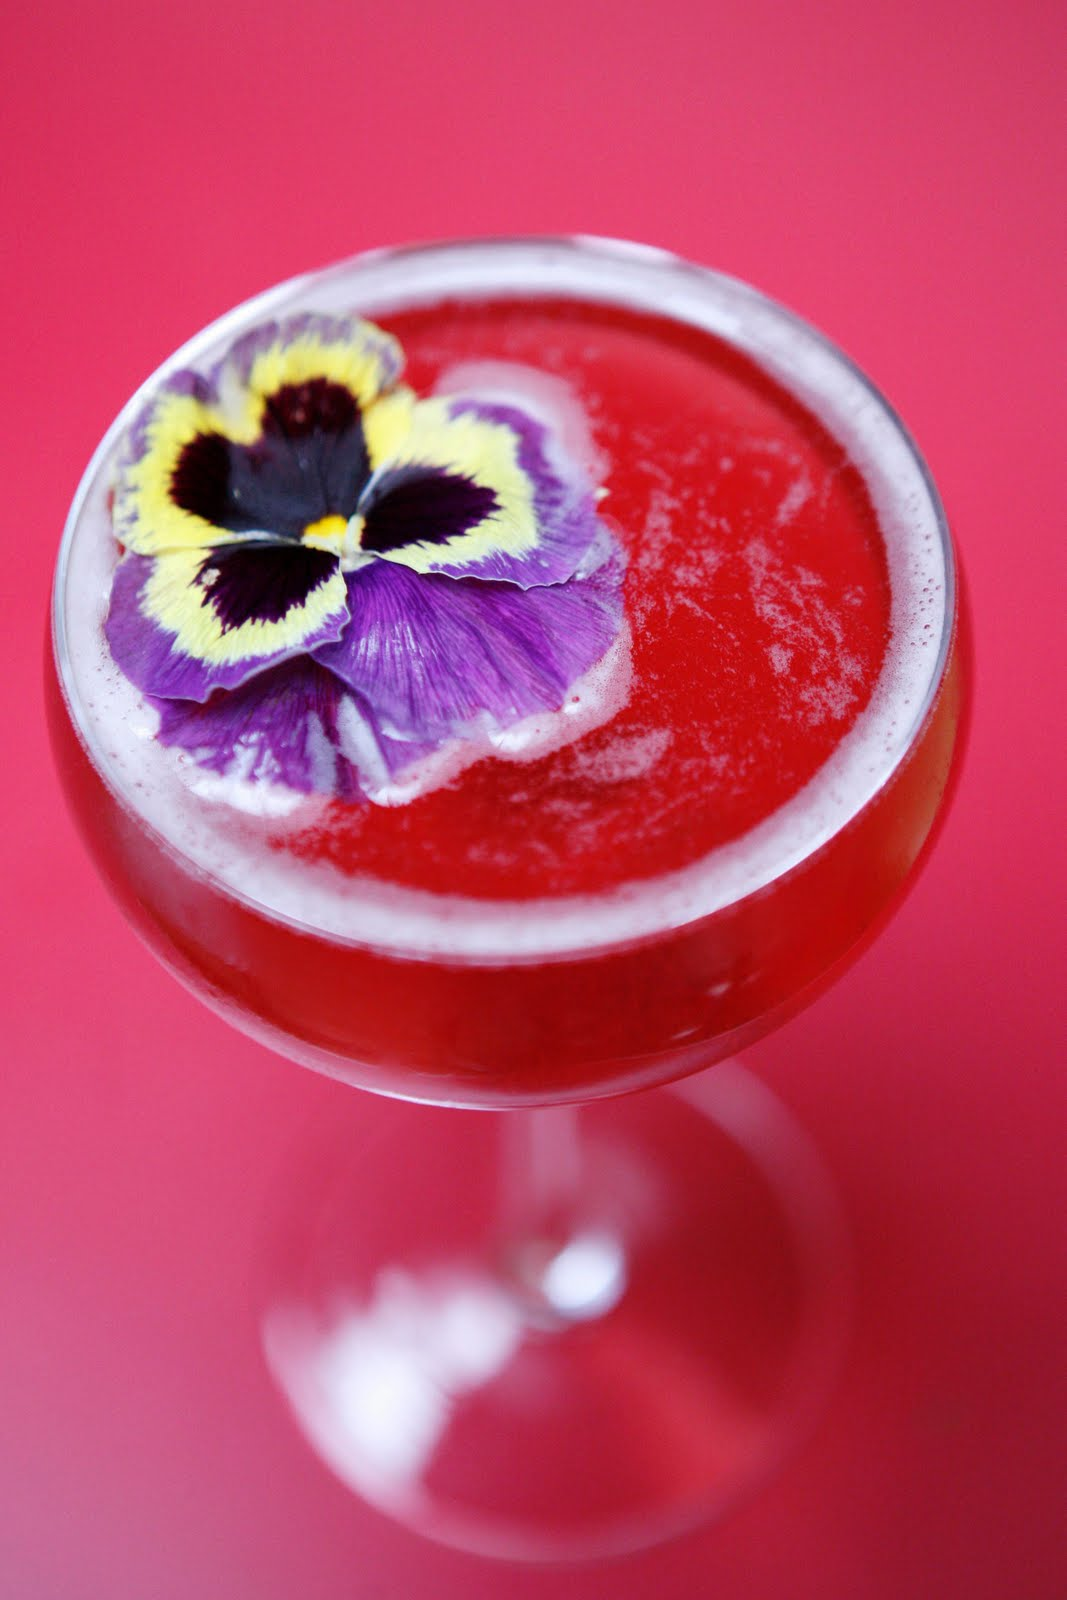 BUZZINGS FROM COCKTAIL BUZZ BOLD NEW CAMPARI RECIPES THAT GO WAY